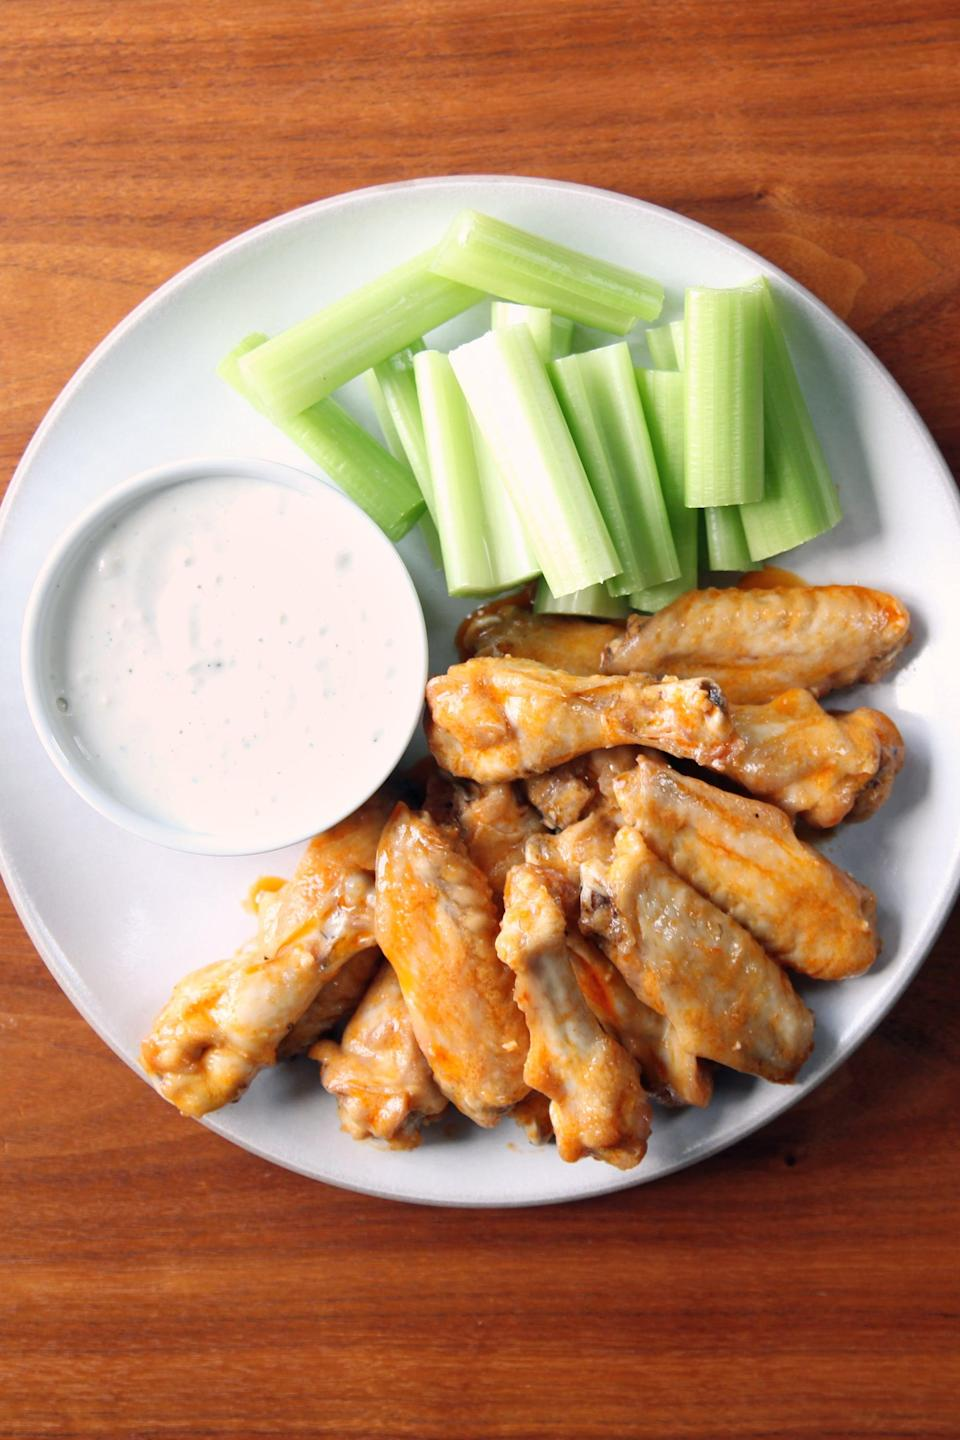 """<p>This easy buffalo chicken recipe is hassle-free and supertasty! Not to mention, these wings are baked not fried, so they are also lower in calories. Touchdown!</p> <p><strong>Get the recipe:</strong> <a href=""""https://www.popsugar.com/food/Baked-Buffalo-Chicken-Wings-Recipe-7257582"""" class=""""link rapid-noclick-resp"""" rel=""""nofollow noopener"""" target=""""_blank"""" data-ylk=""""slk:classic buffalo wings"""">classic buffalo wings</a> </p>"""